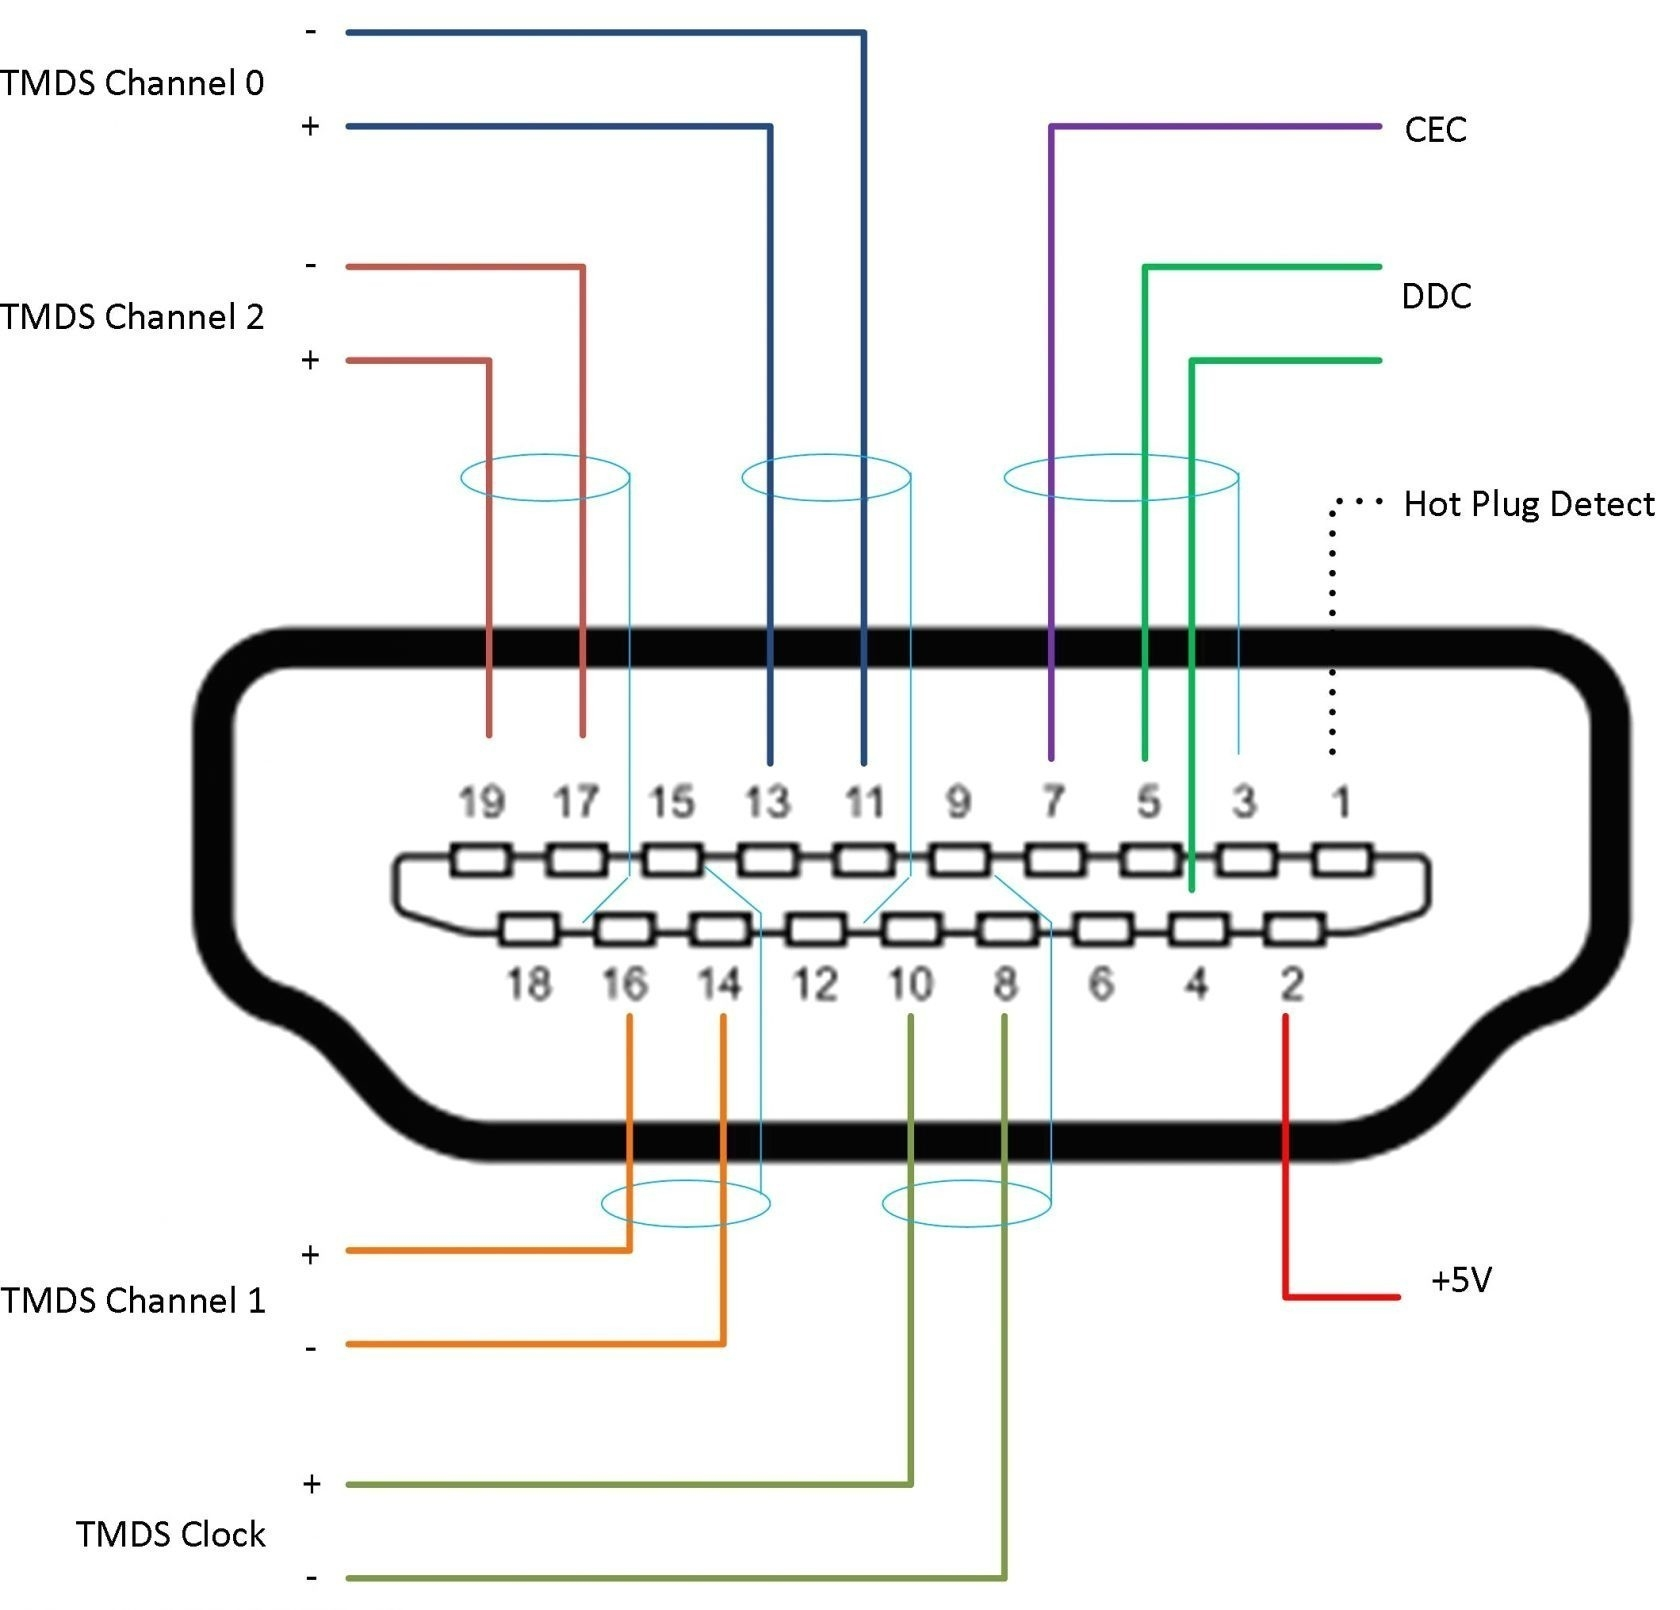 hight resolution of hdmi wiring diagram share circuit diagrams wiring diagram for hdmi arc wiring diagram for hdmi